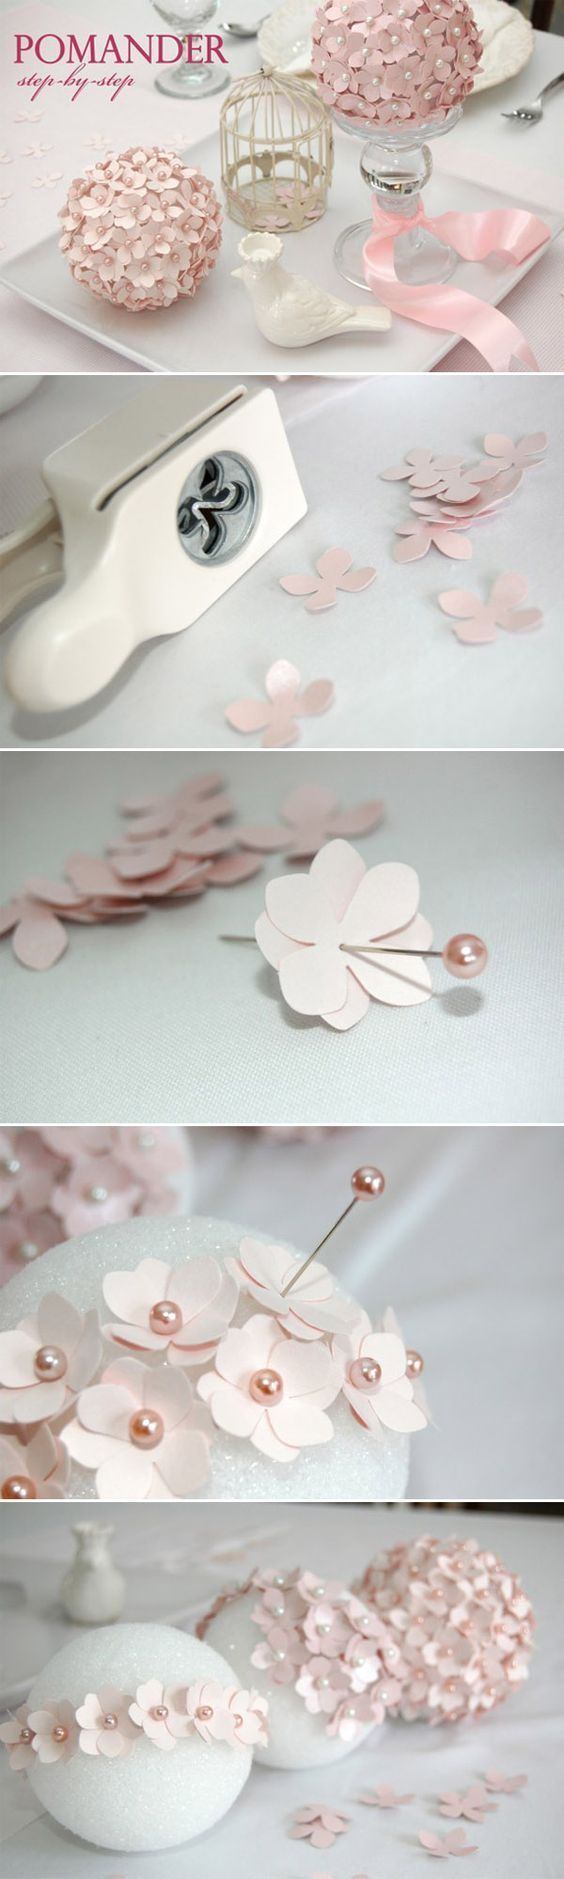 flower ball diy wedding centerpiece ideas - I've made these and they're super beautiful and easy to make!